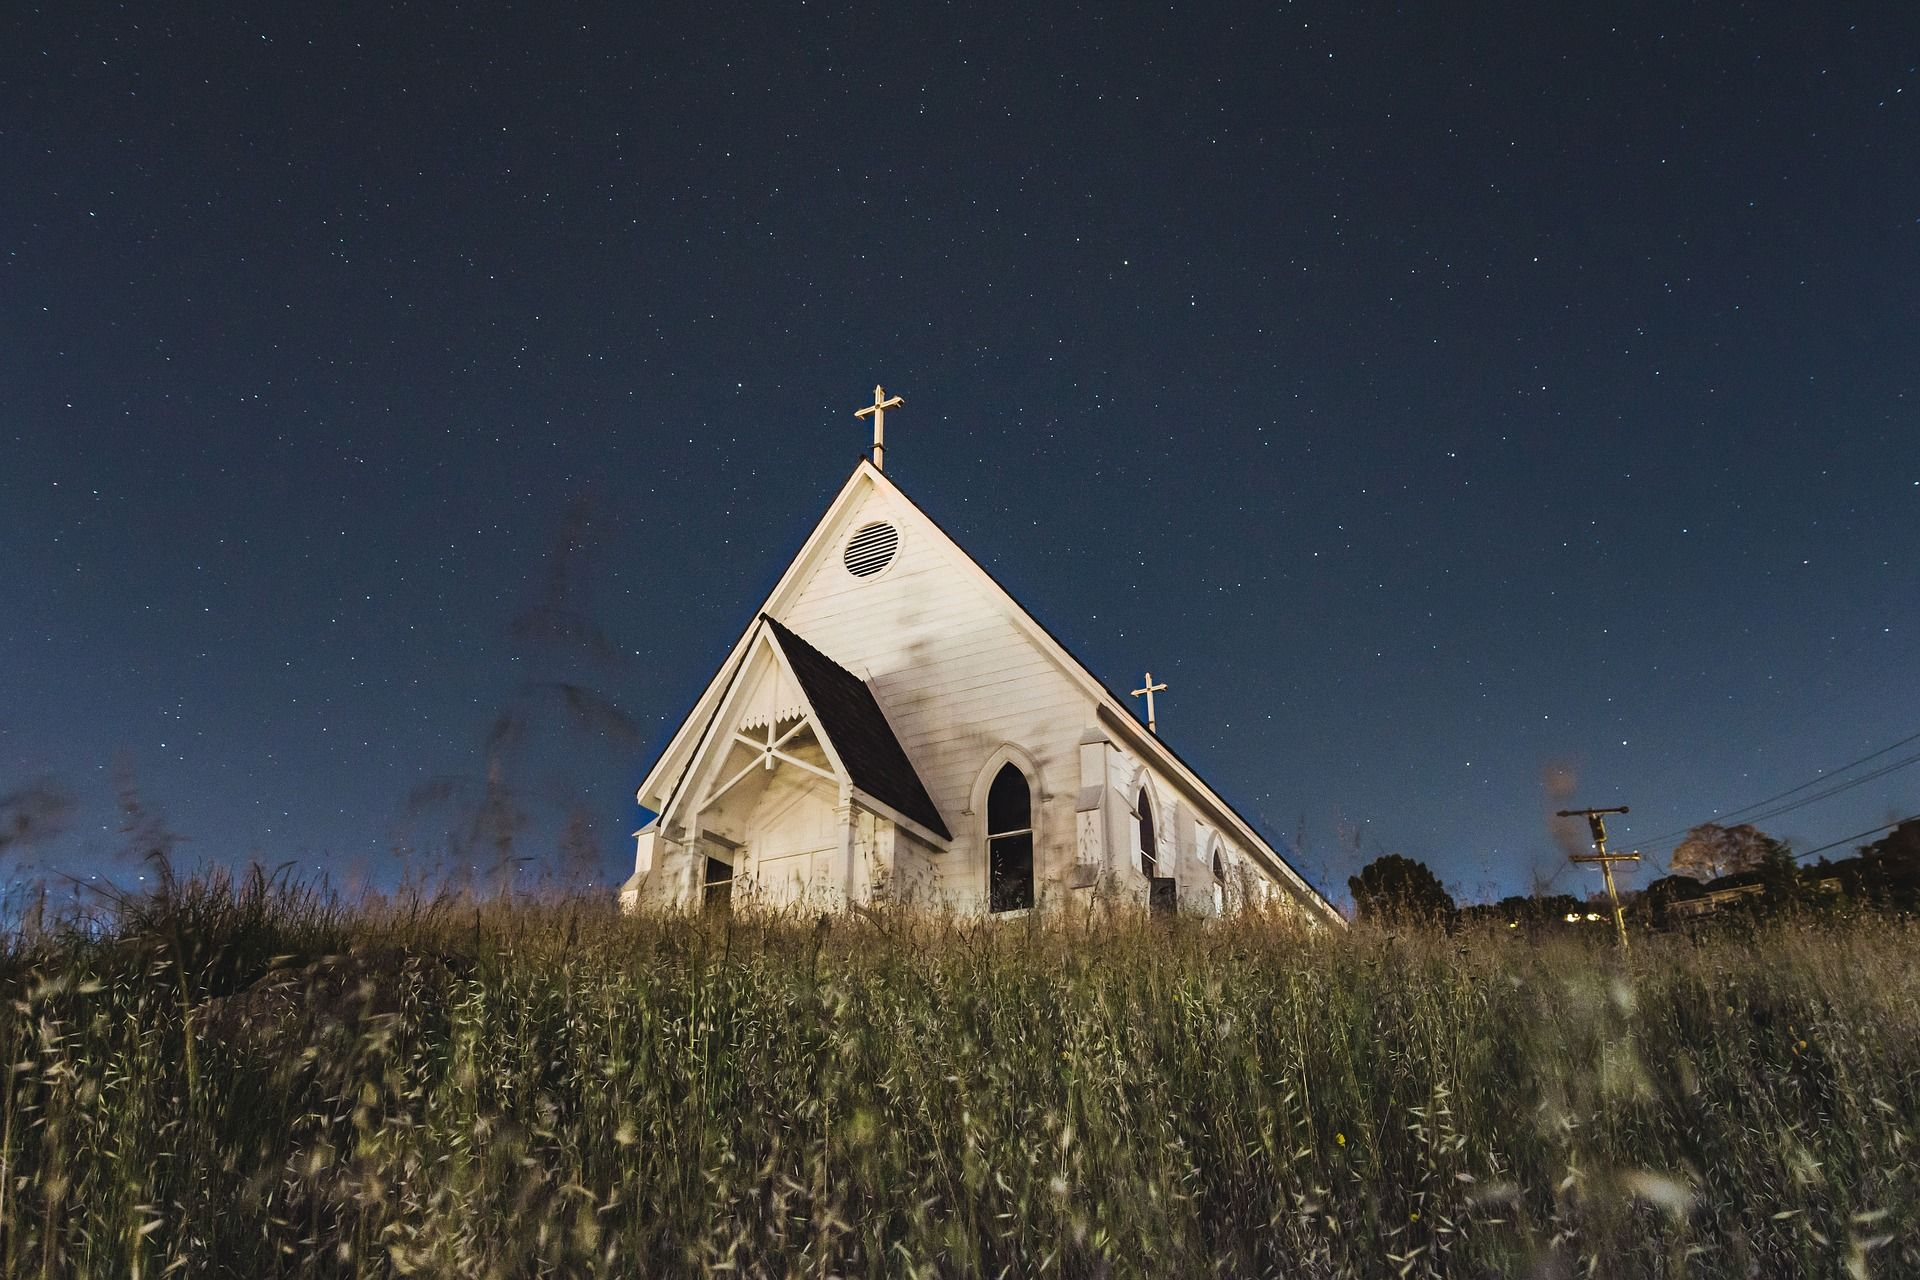 A lone white church appearing to be standing on its own in a grassy field.